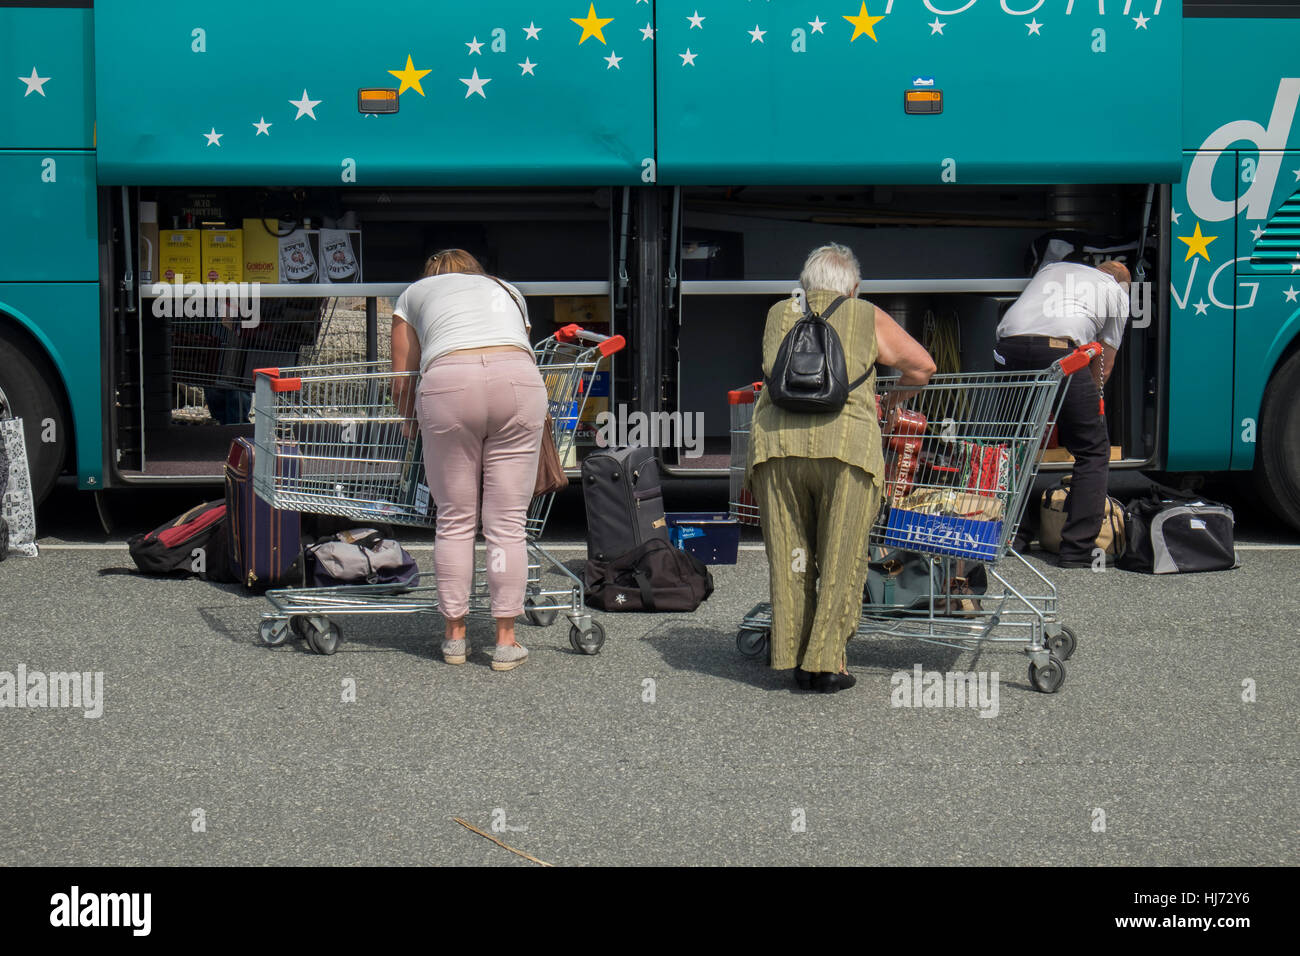 People have shopped at the Border Shop in Germany and unloads now the bus for the journey home. - Stock Image